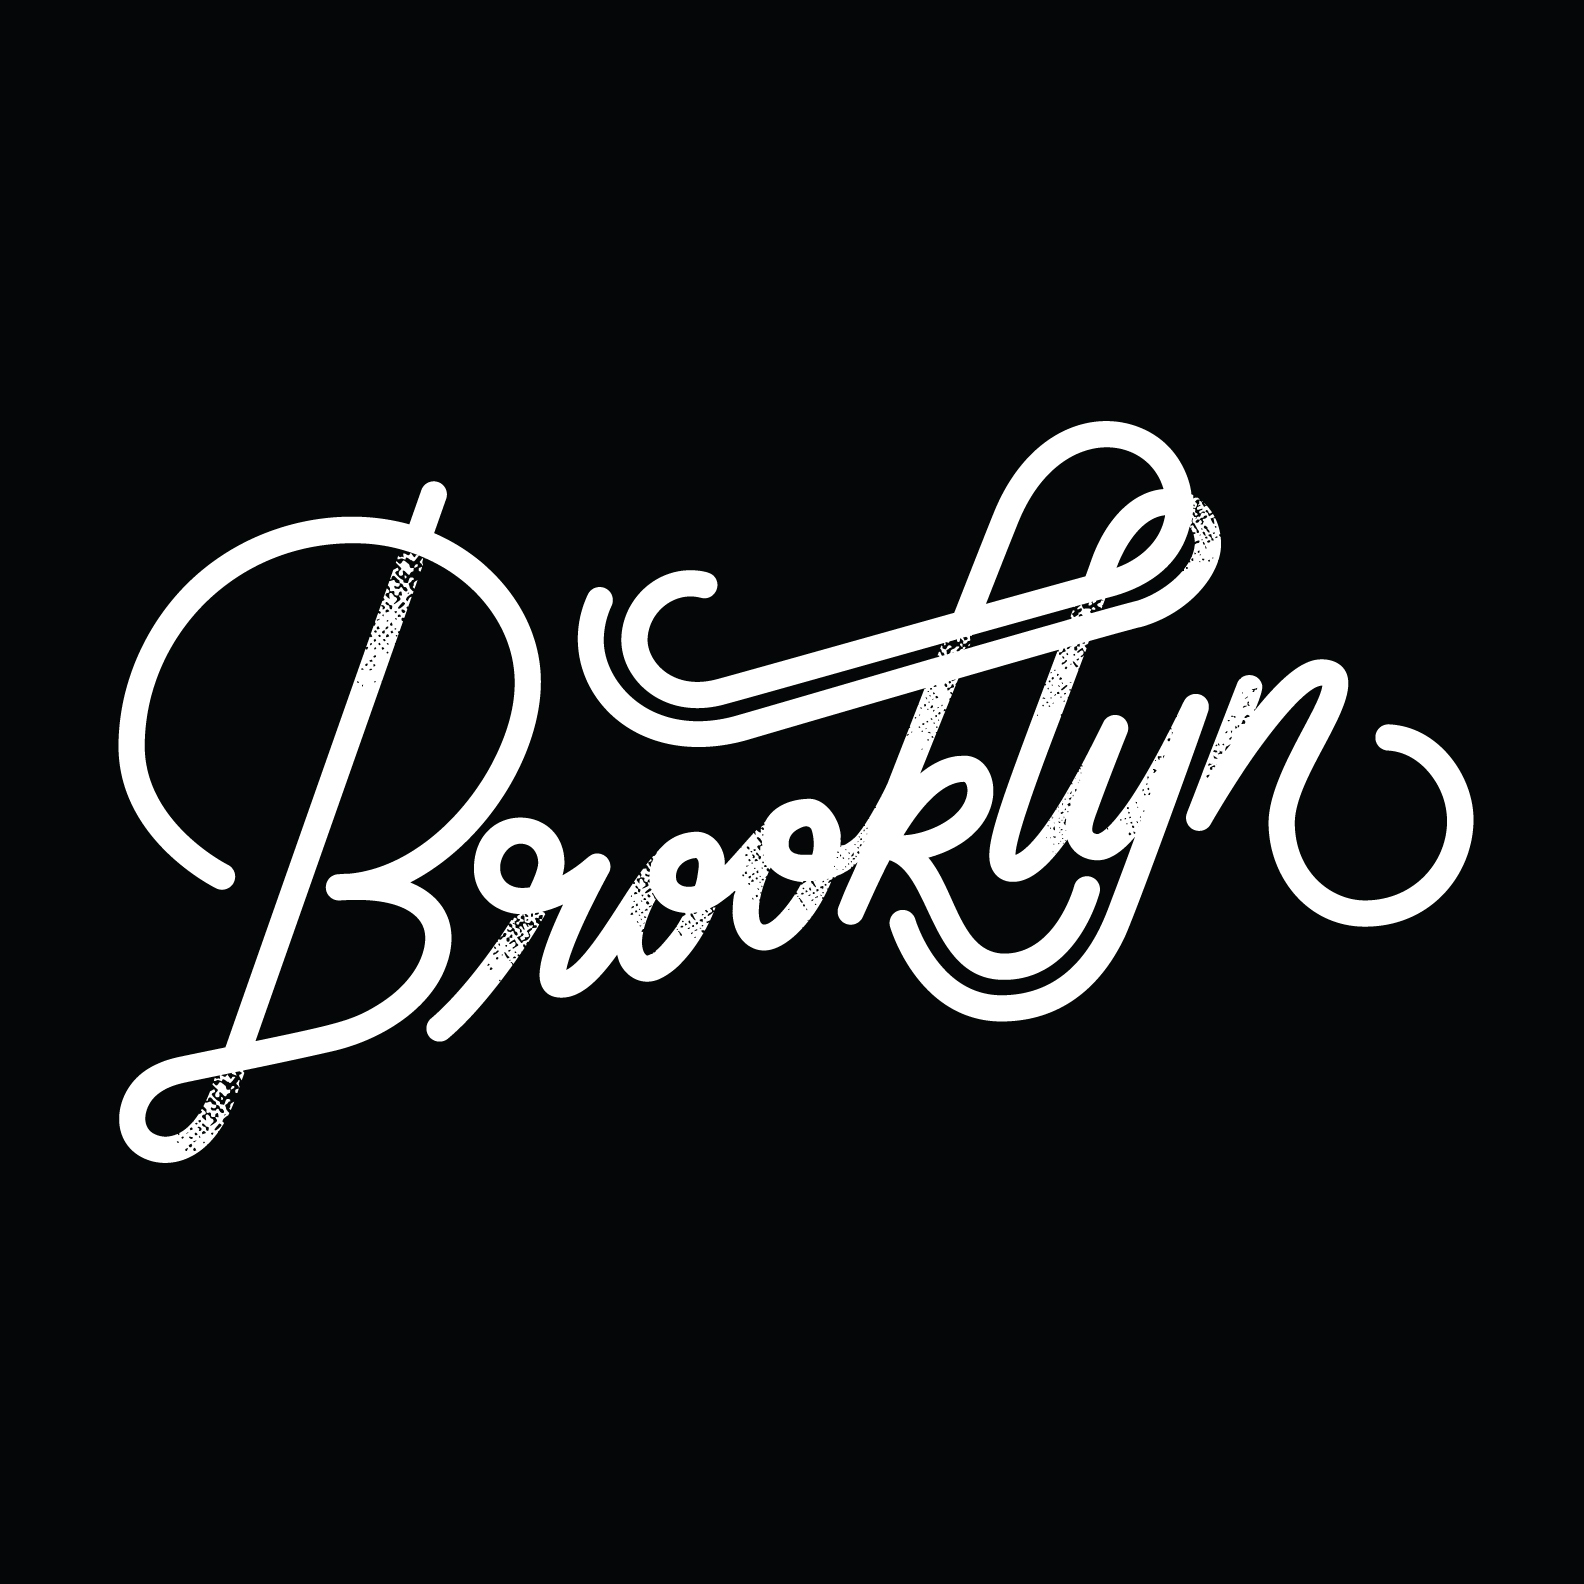 Brooklyn_monoline-script_by-Noah-Camp.jpg